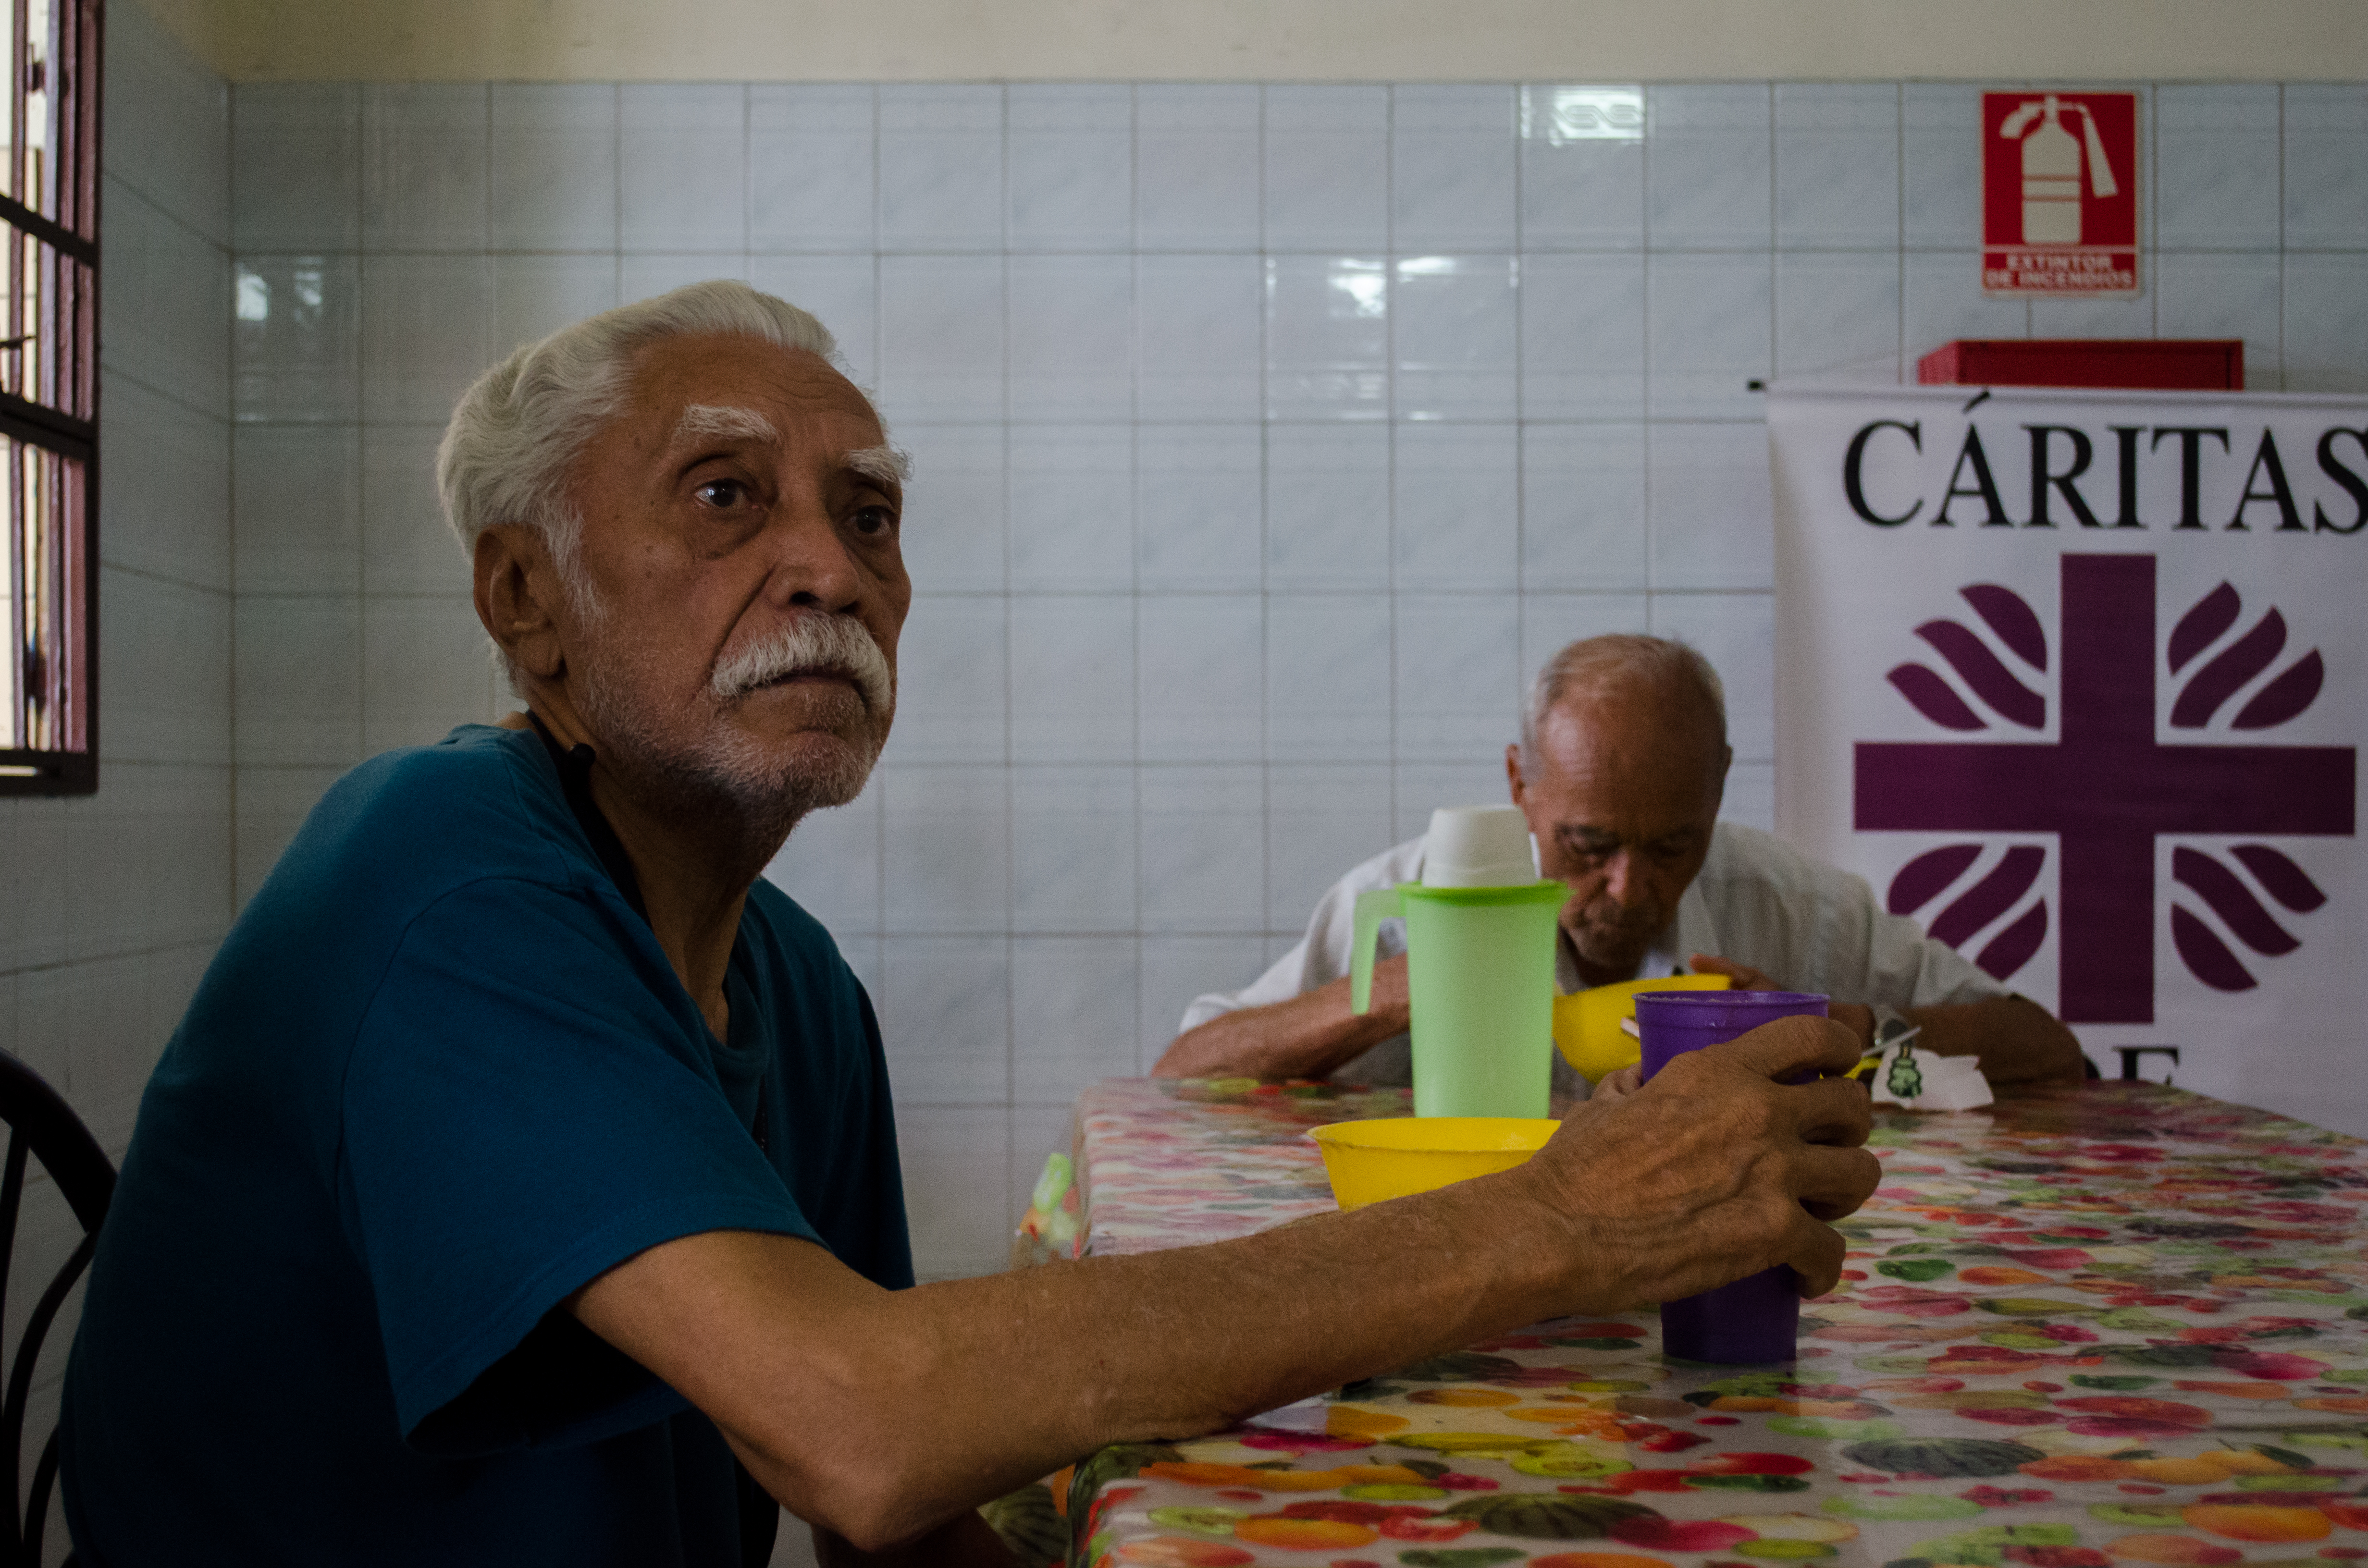 Ministry of hope in Venezuela as economy collapses